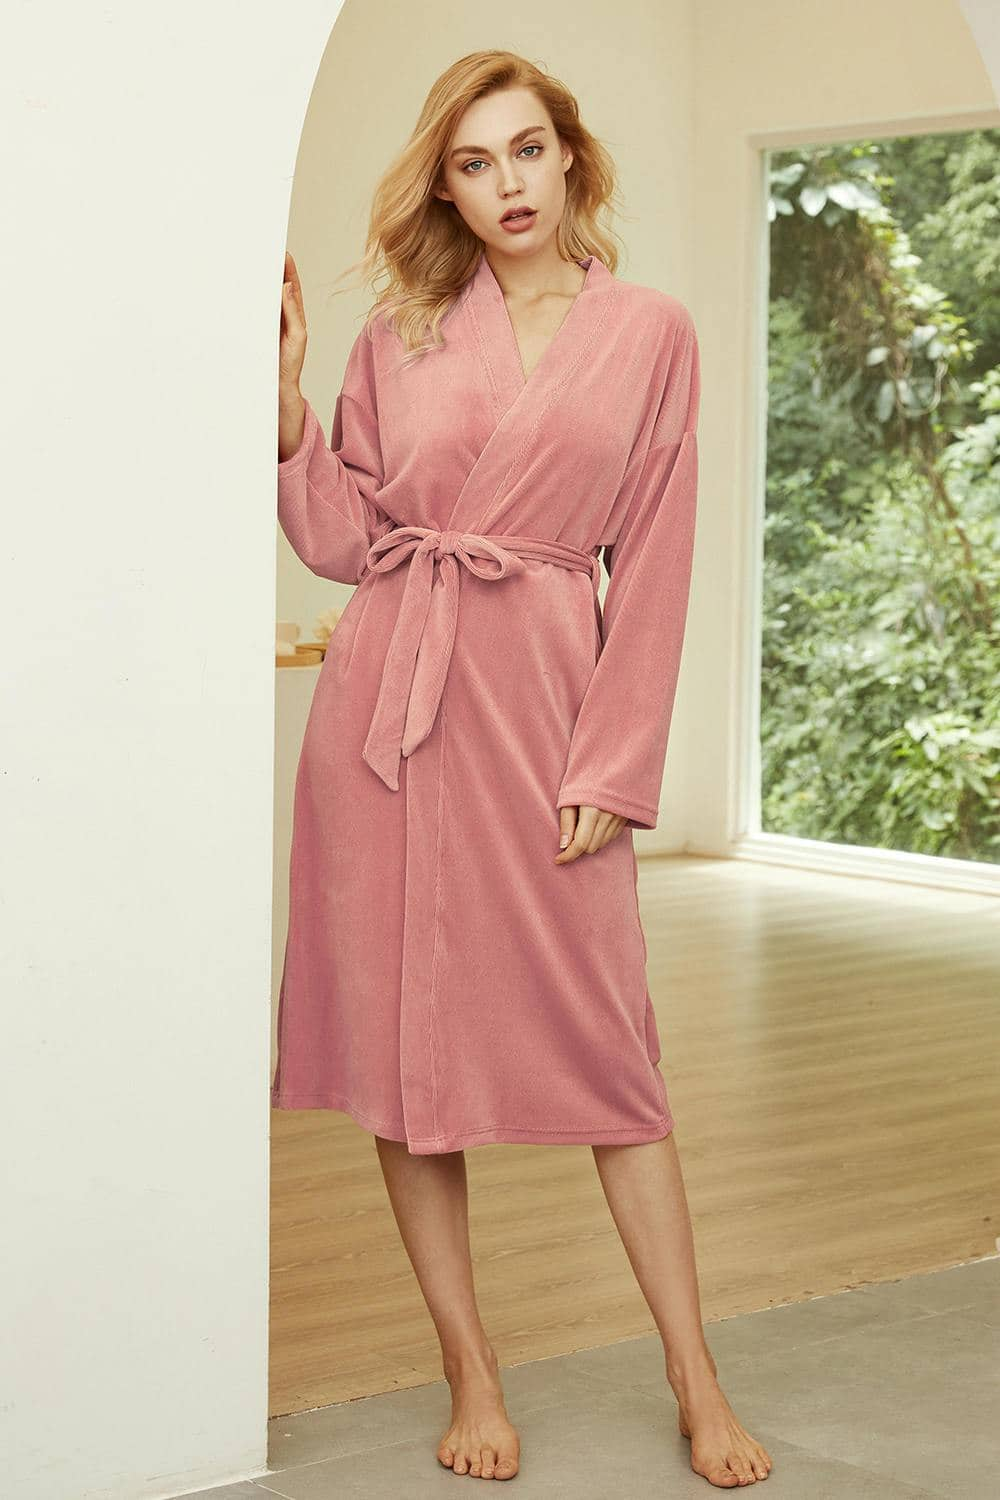 Lightweight Waist Belt Velvet Pink Bathrobe